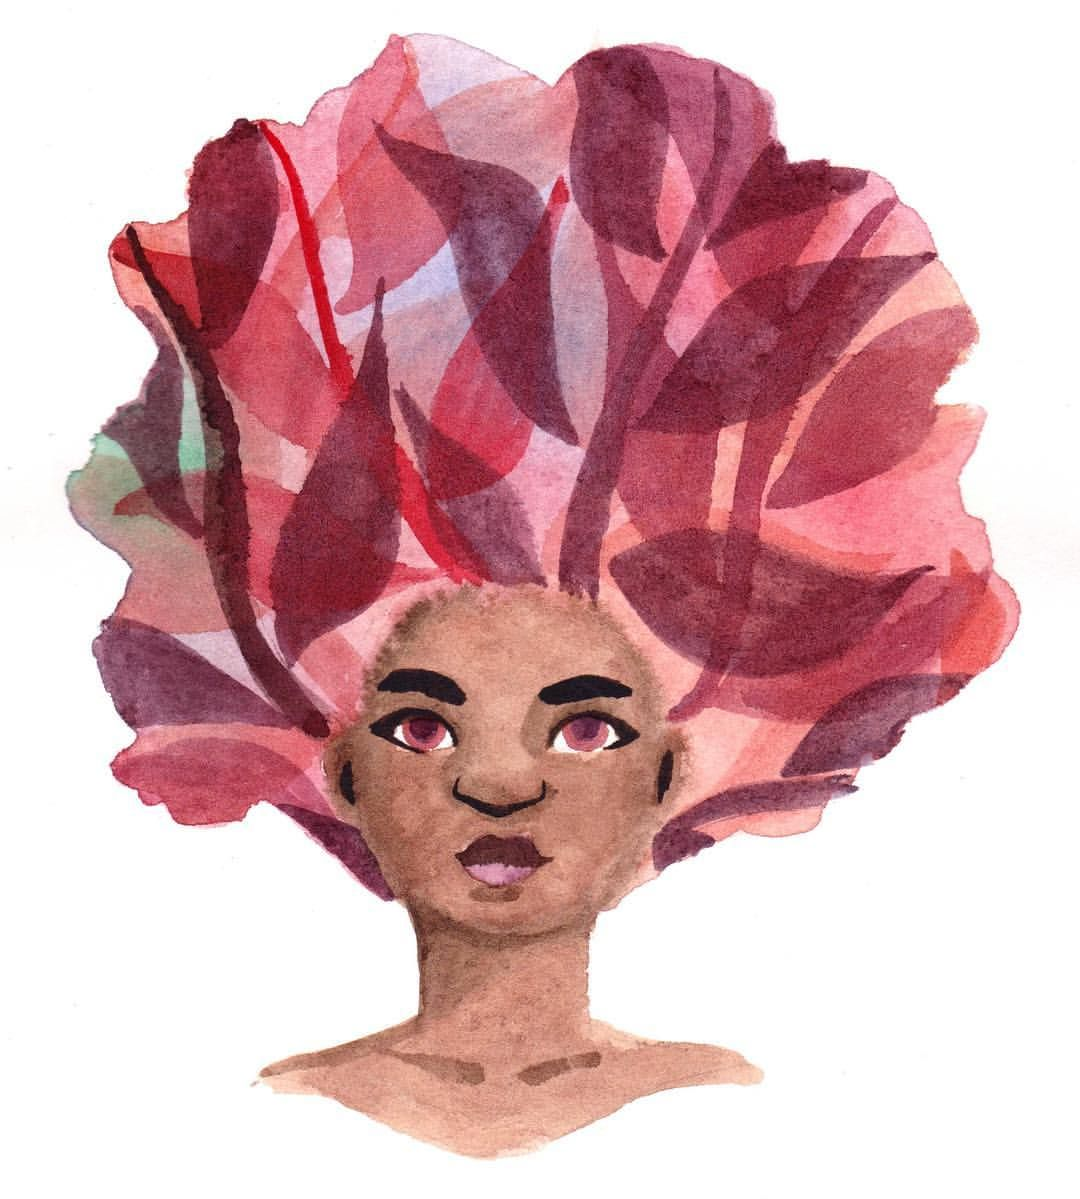 Carol Rossetti: Sometimes the forest is inside. #characterdesign #lapisdecor #aquarela #watercolor #watercolorpainting #forest #blackgirl #afro